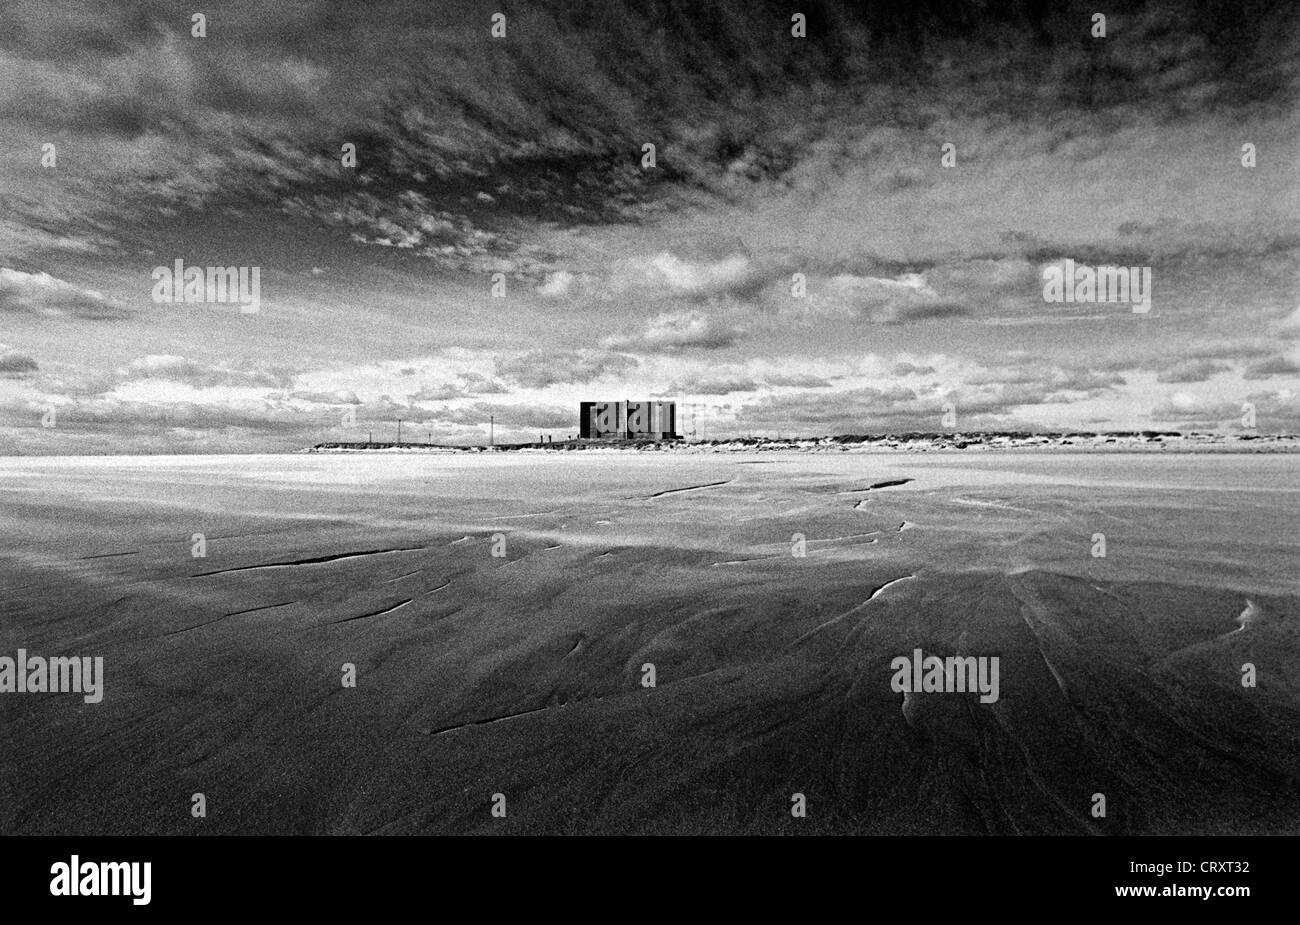 Hartlepool Nuclear Power Station. - Stock Image